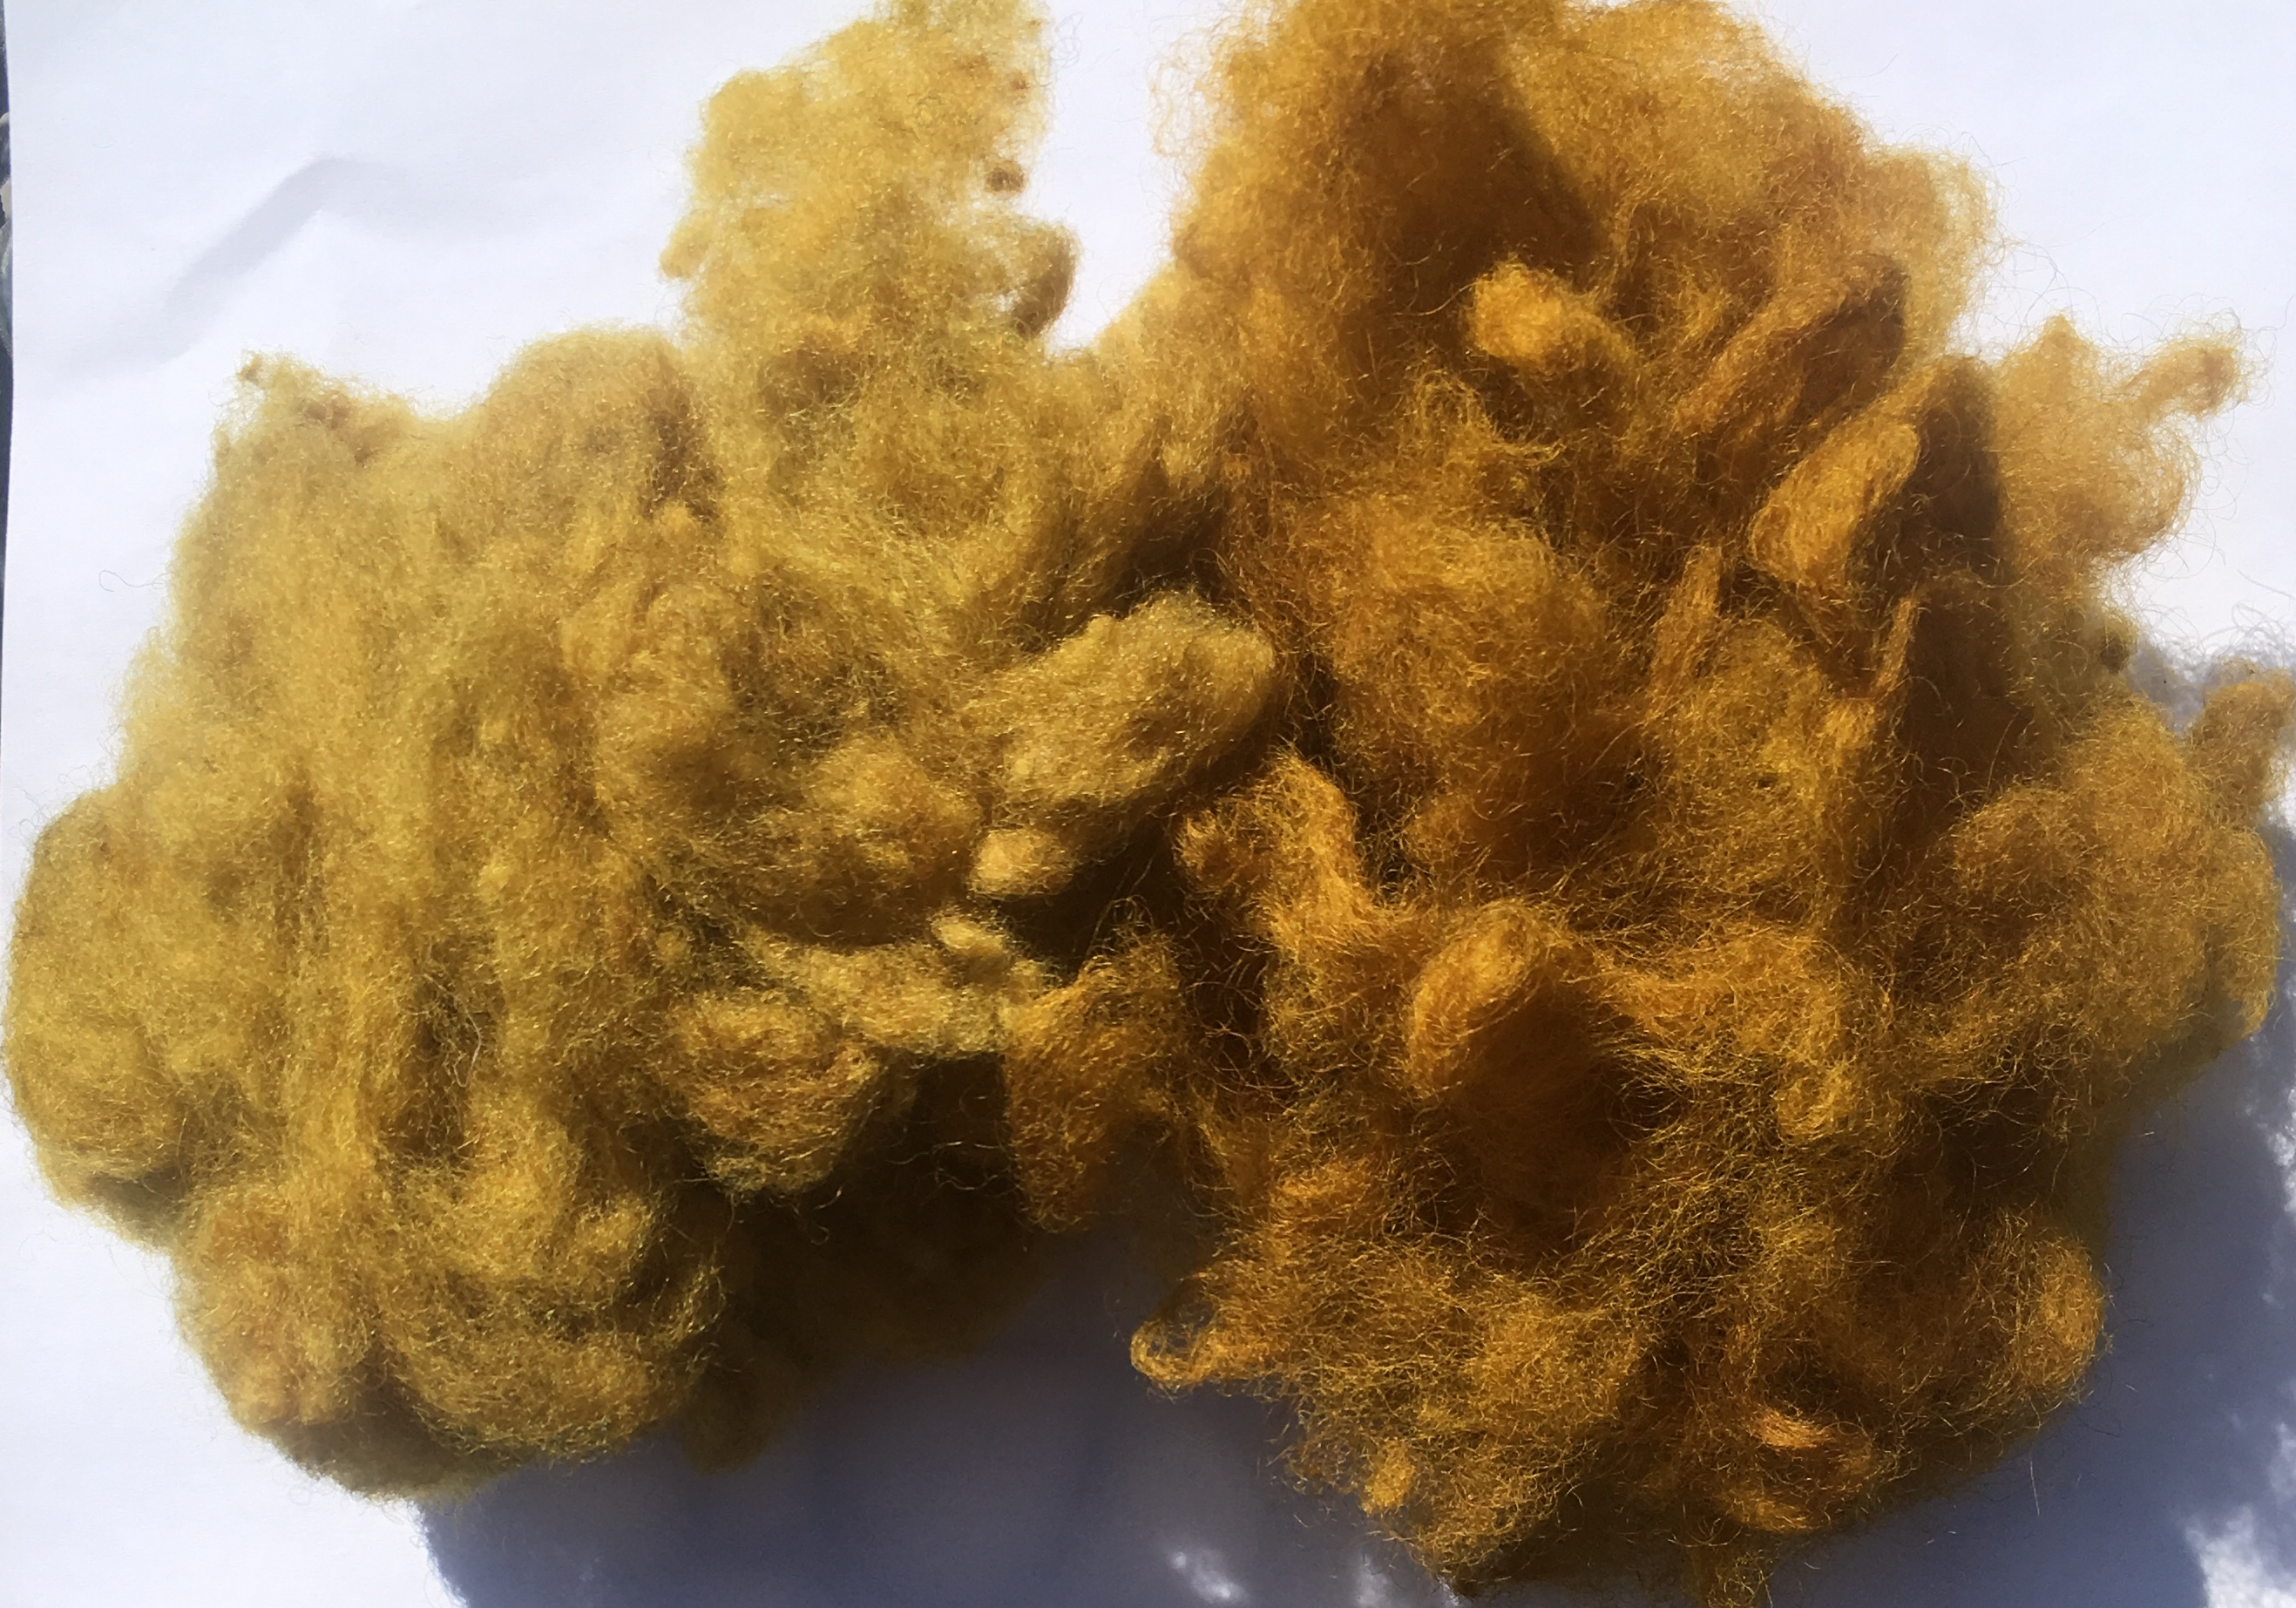 Marigold-dyed fleece